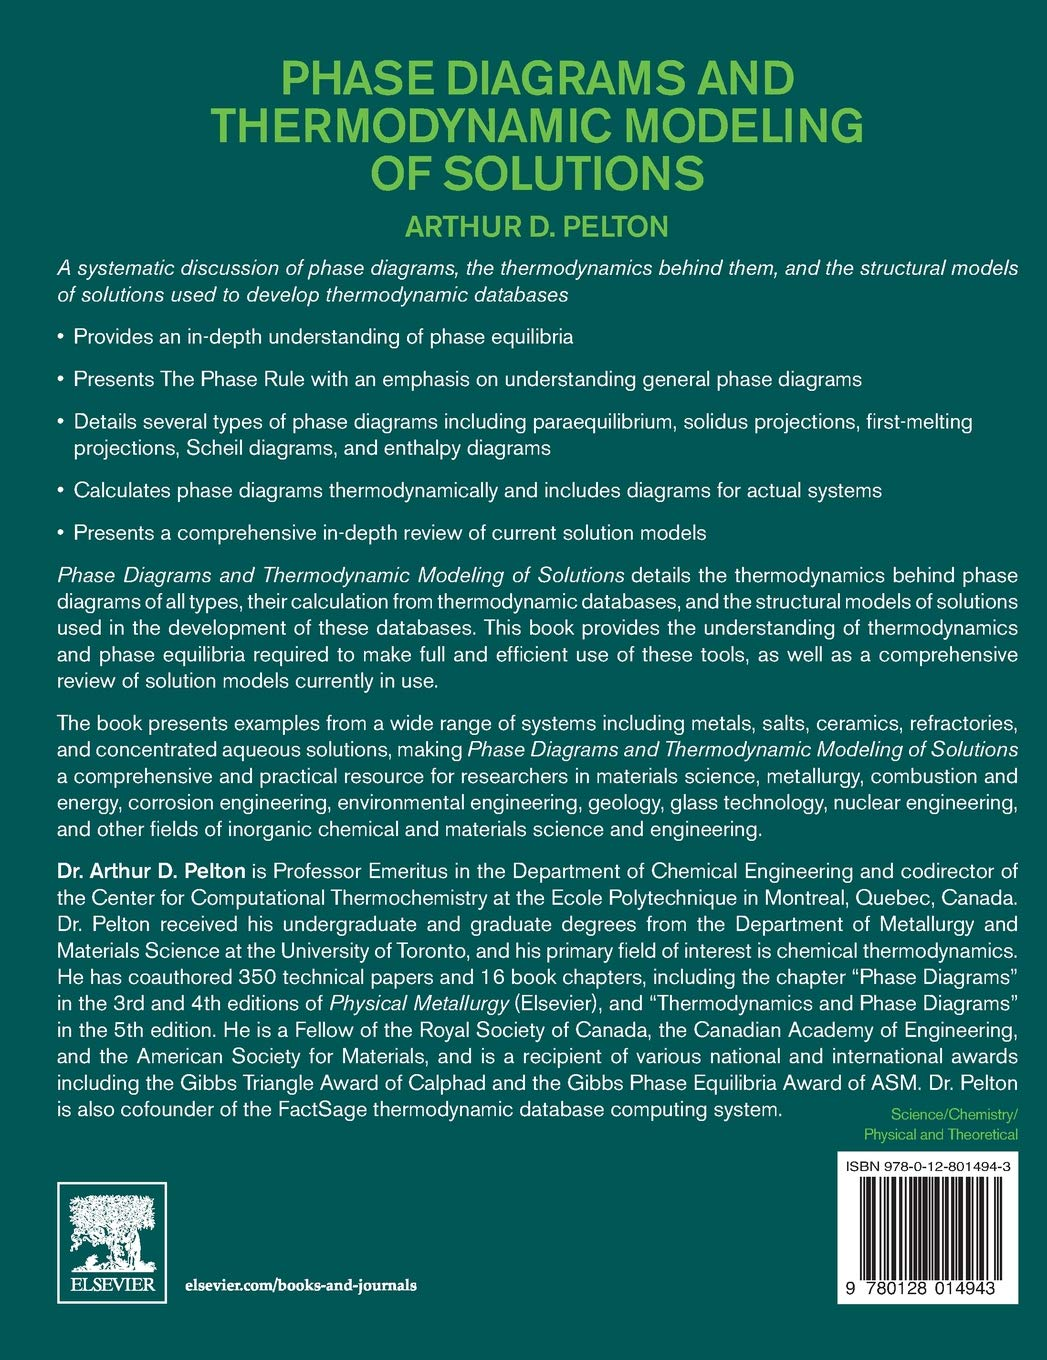 amazon phase diagrams and thermodynamic modeling of solutions